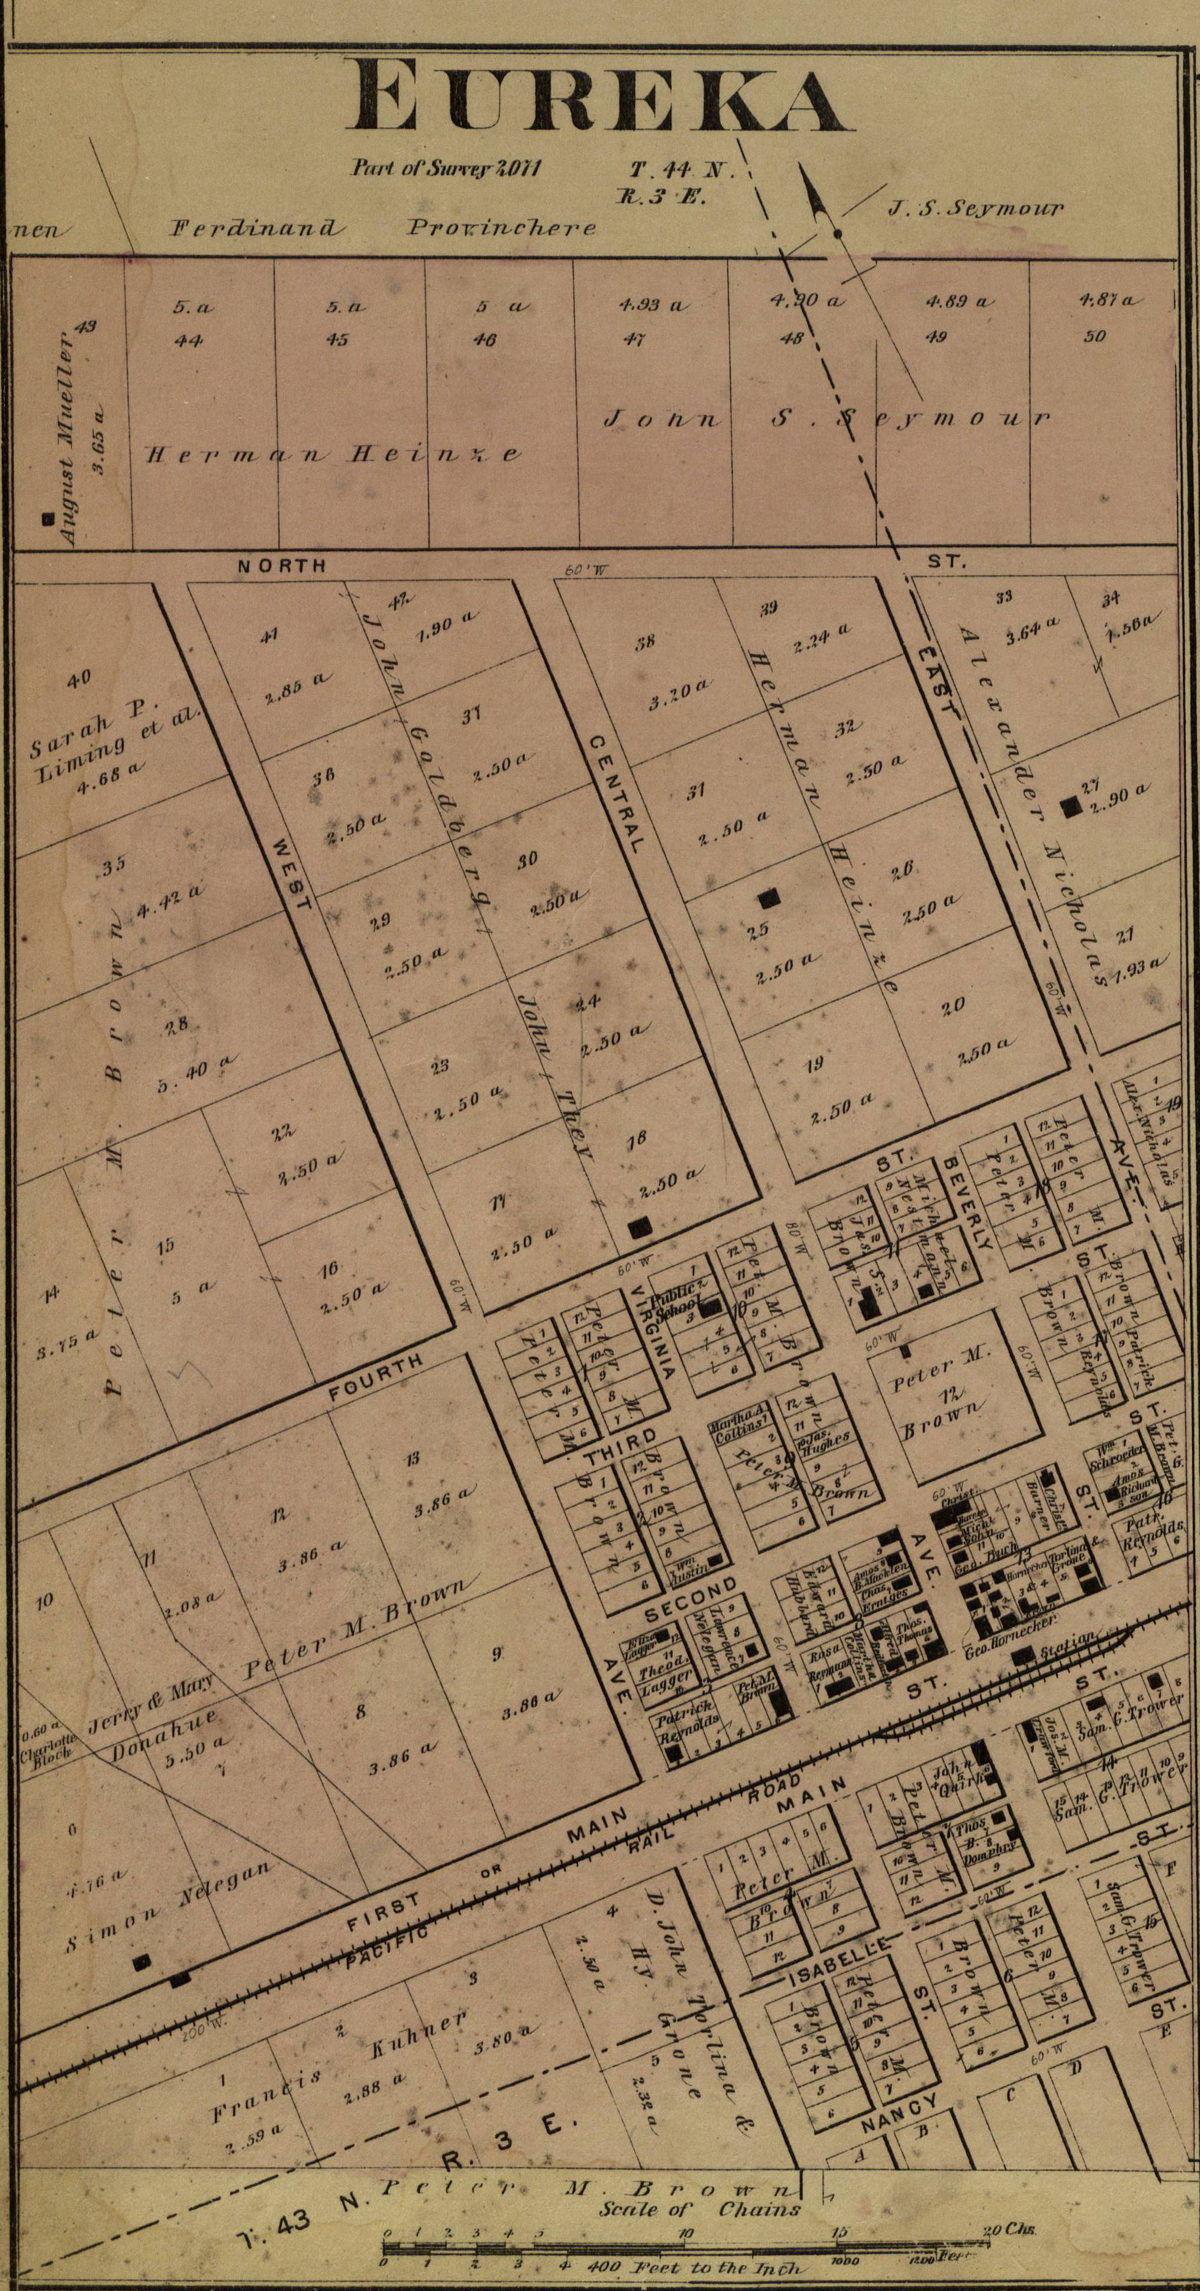 City of Eureka Map - Circa 1878